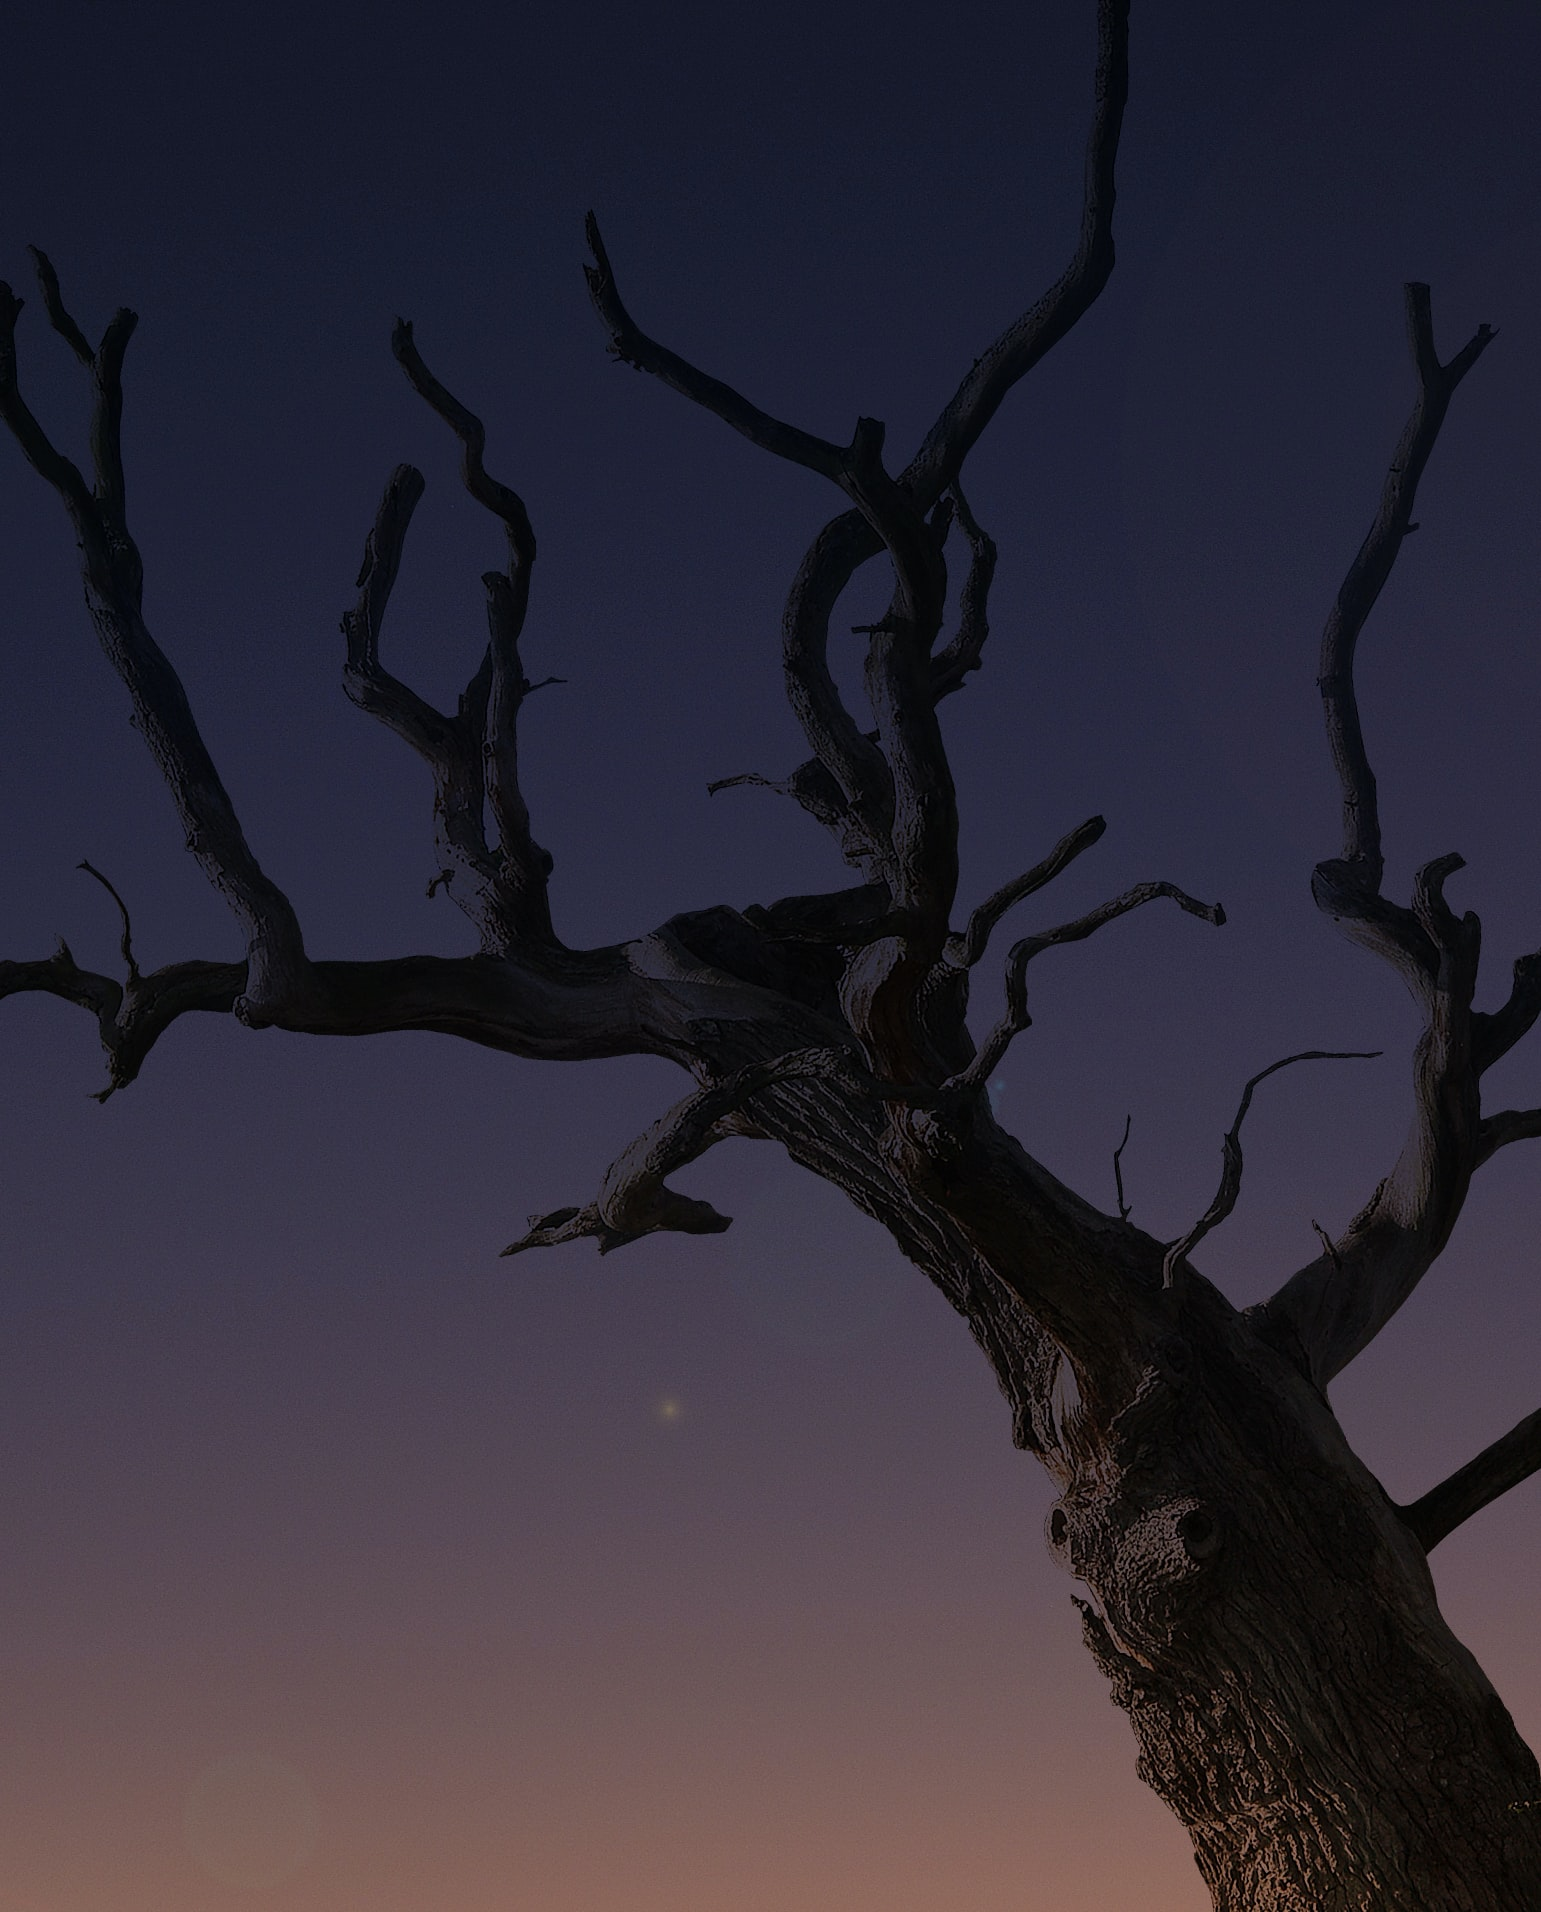 A portrait view of desert tree in silhouette form in the night at sunset